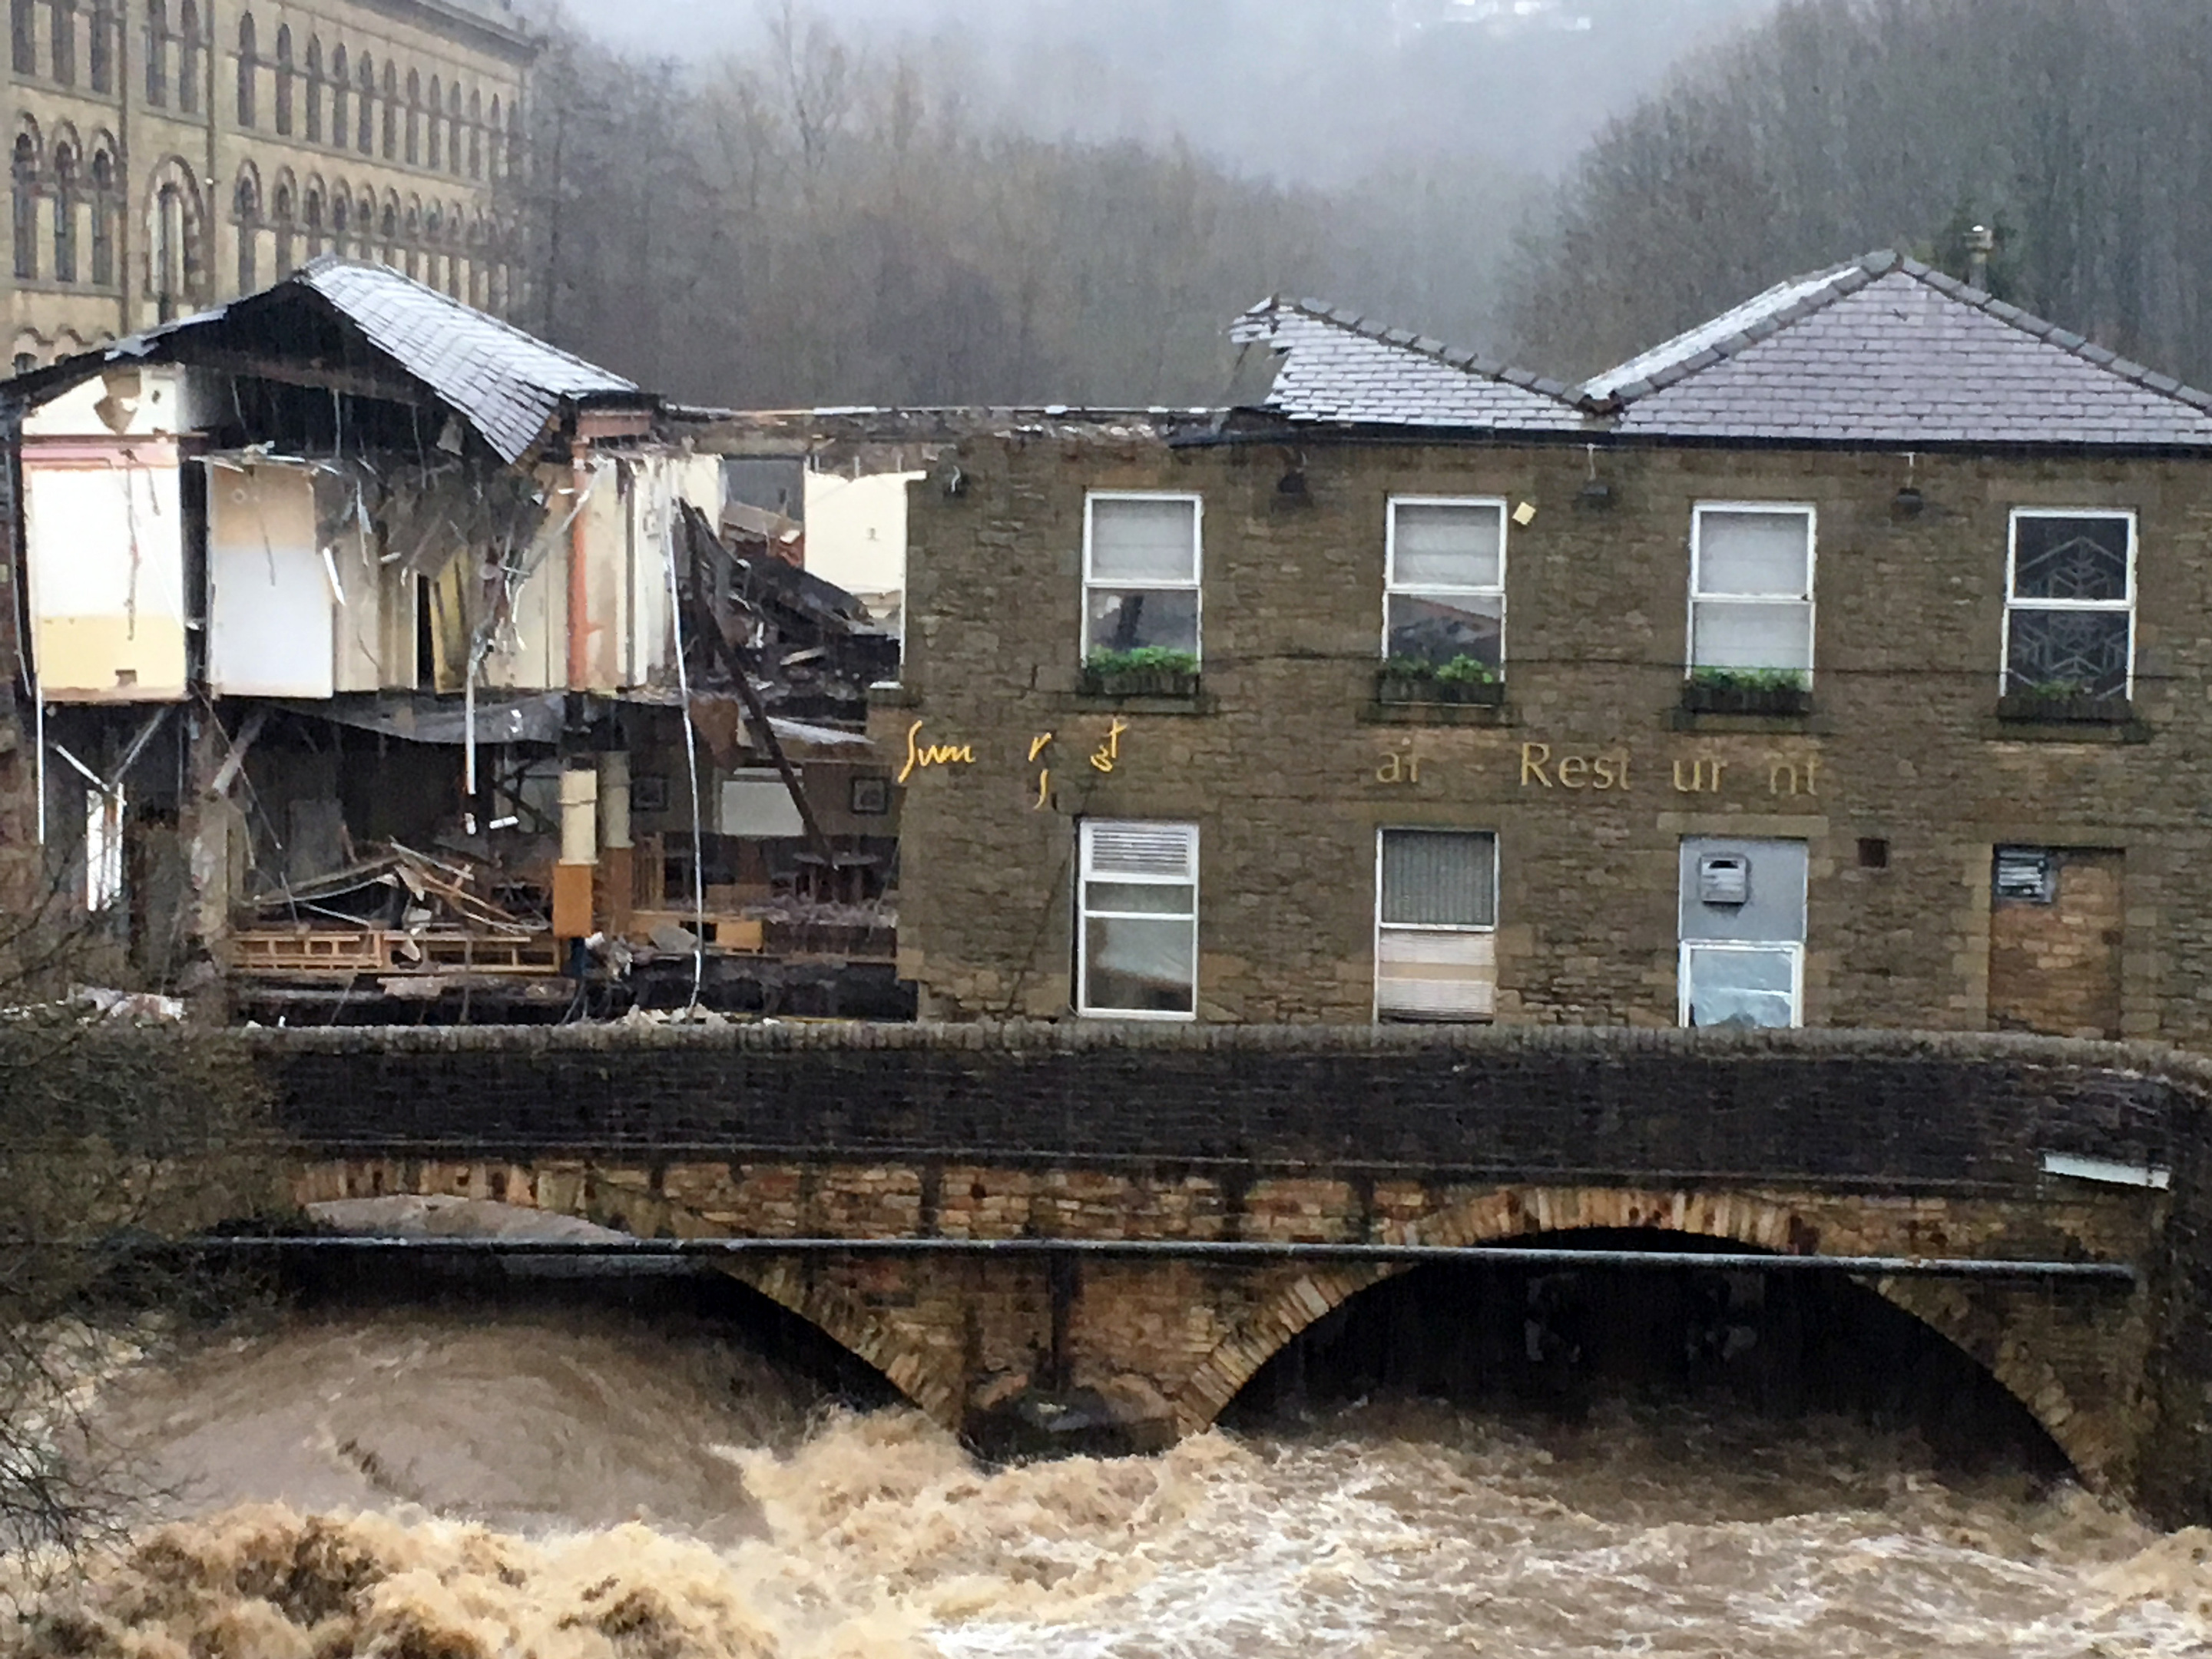 Waterside pub in Summerseat, Lancashire, which partially collapsed due to flooding in the River Irwell.  (Neil Hughes / PA Wire)